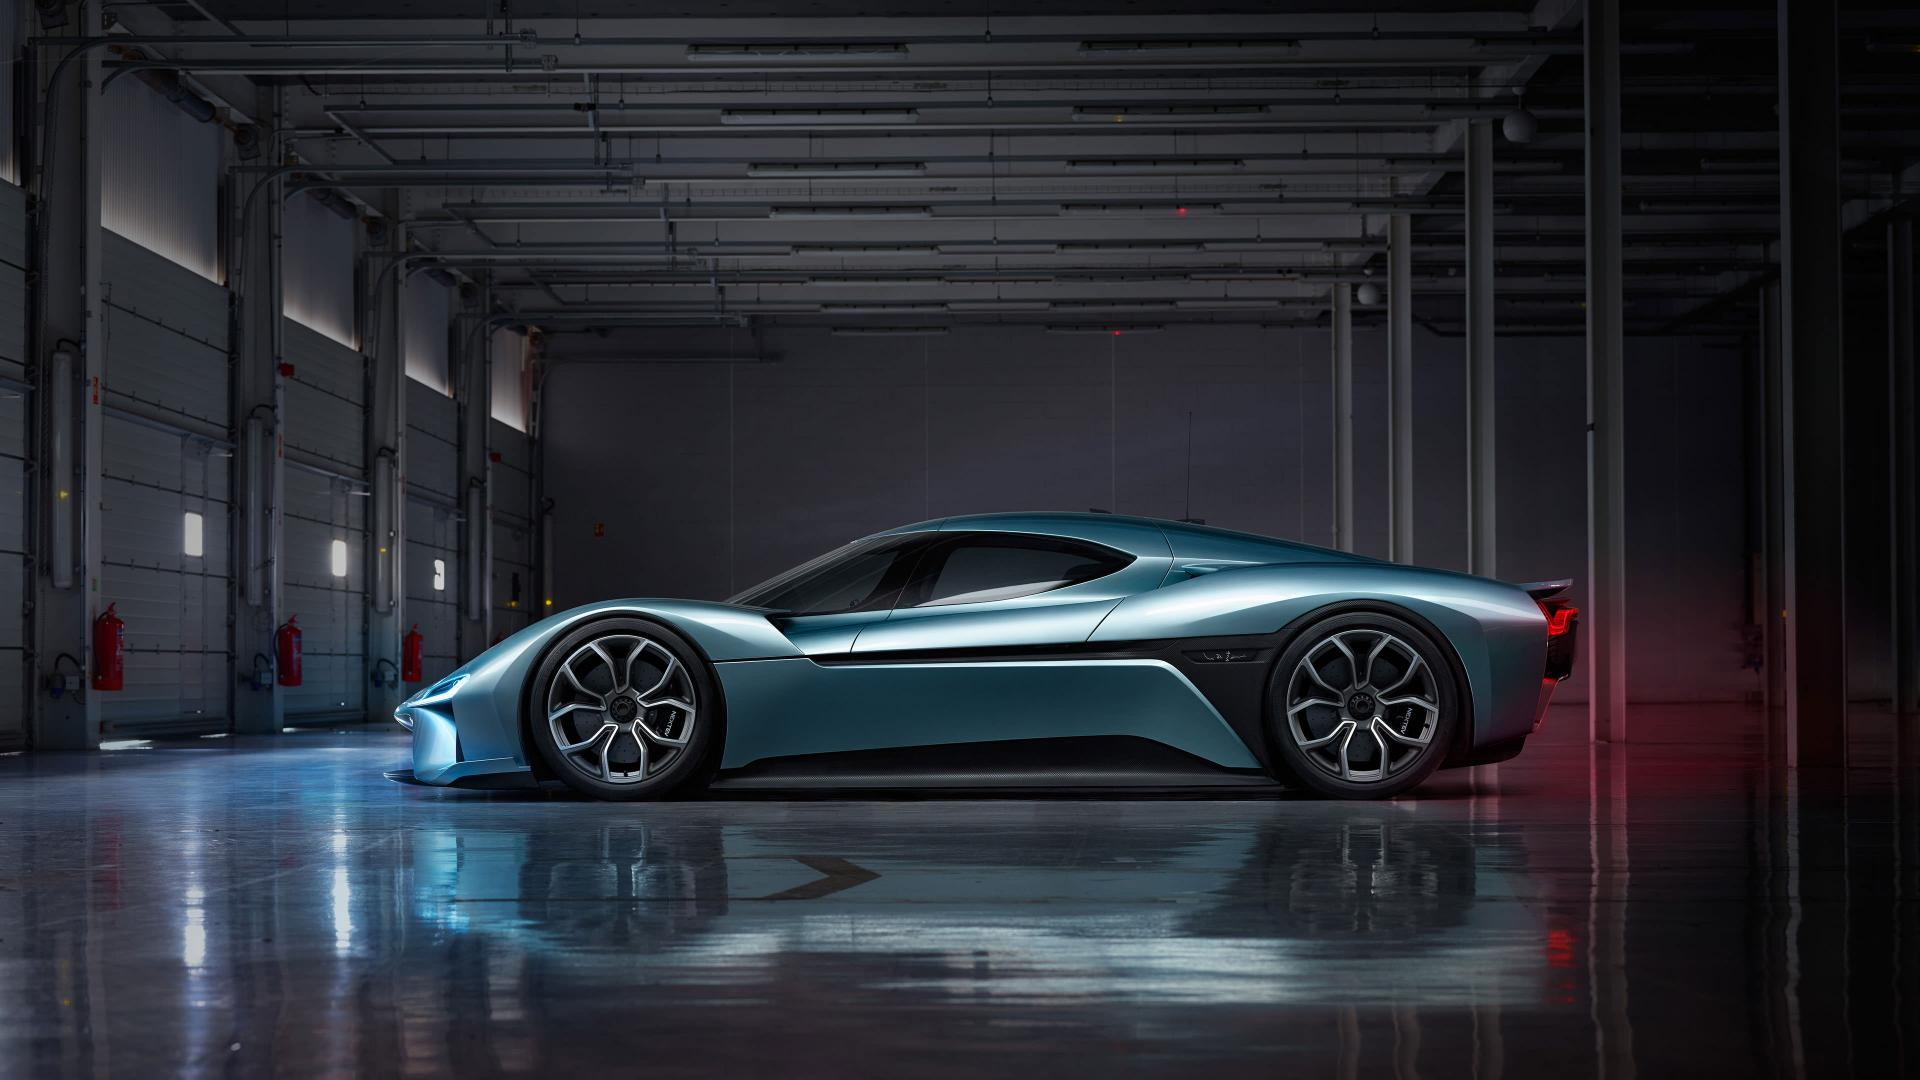 nextev-s-nio-ep9-is-the-fastest-electric-car-on-the-nurburgring-113122_1.jpg